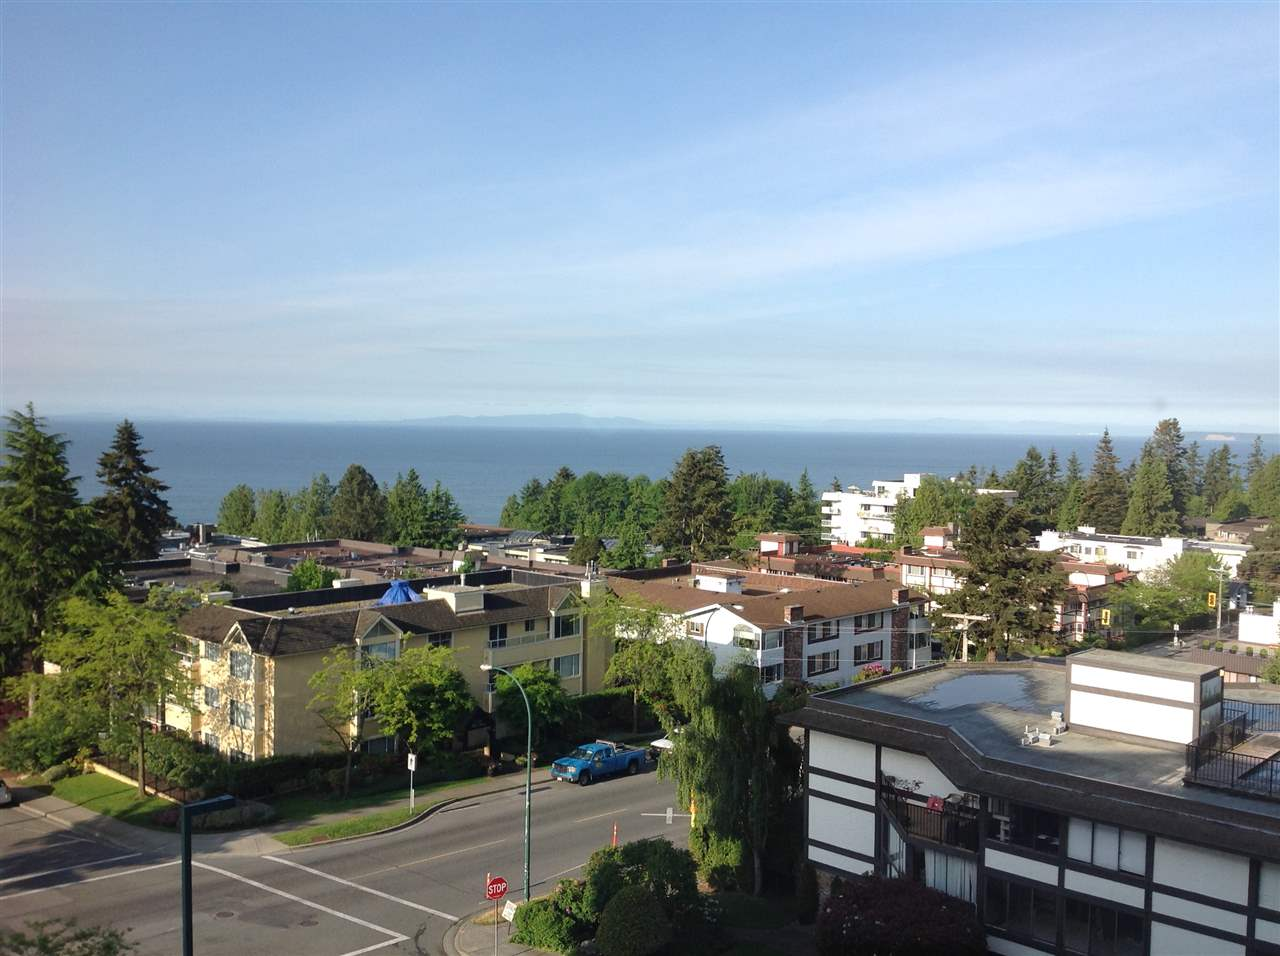 611 1442 FOSTER STREET - White Rock Apartment/Condo for sale, 2 Bedrooms (R2533524) - #12